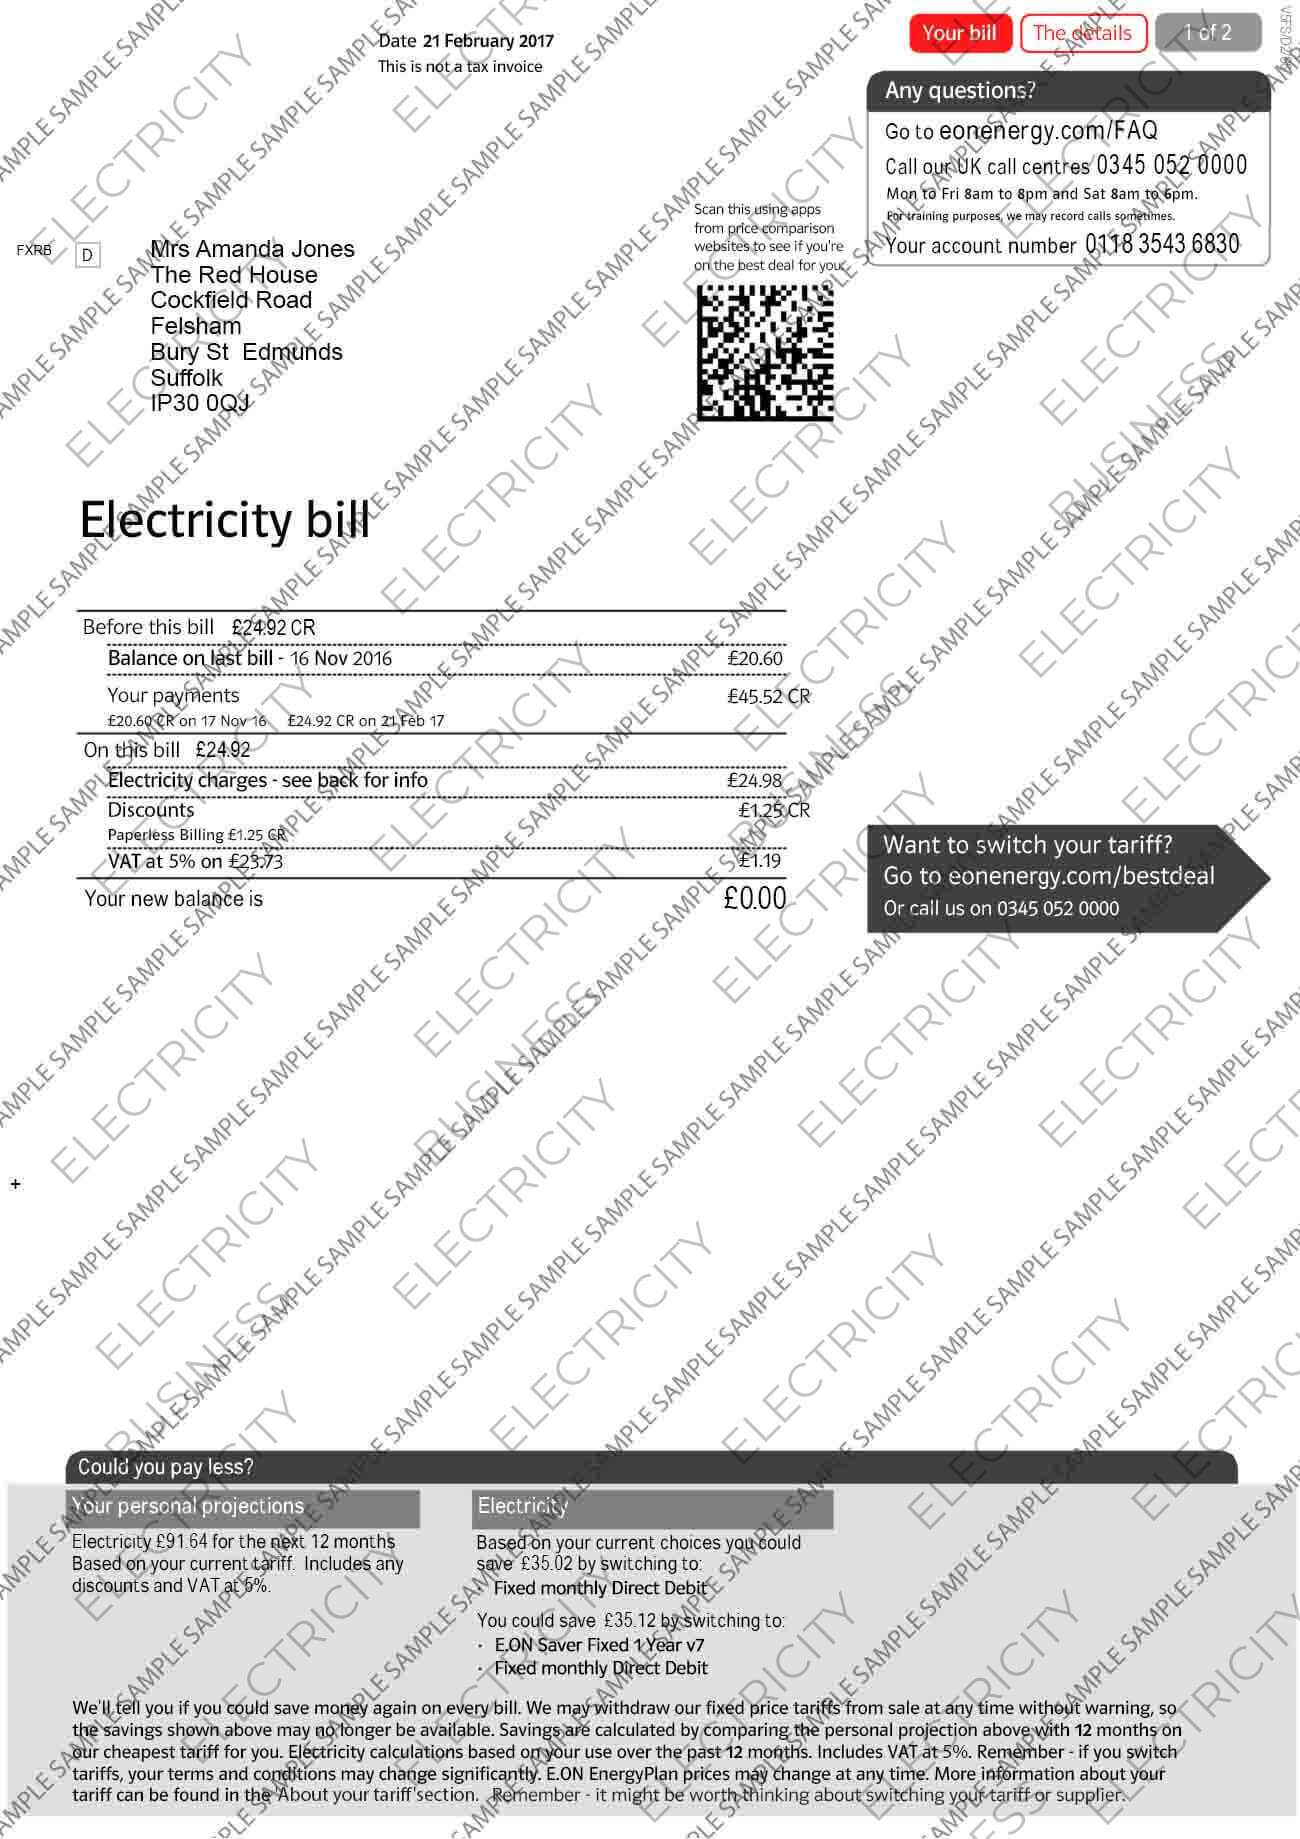 E-ON Electricity Utility Bill